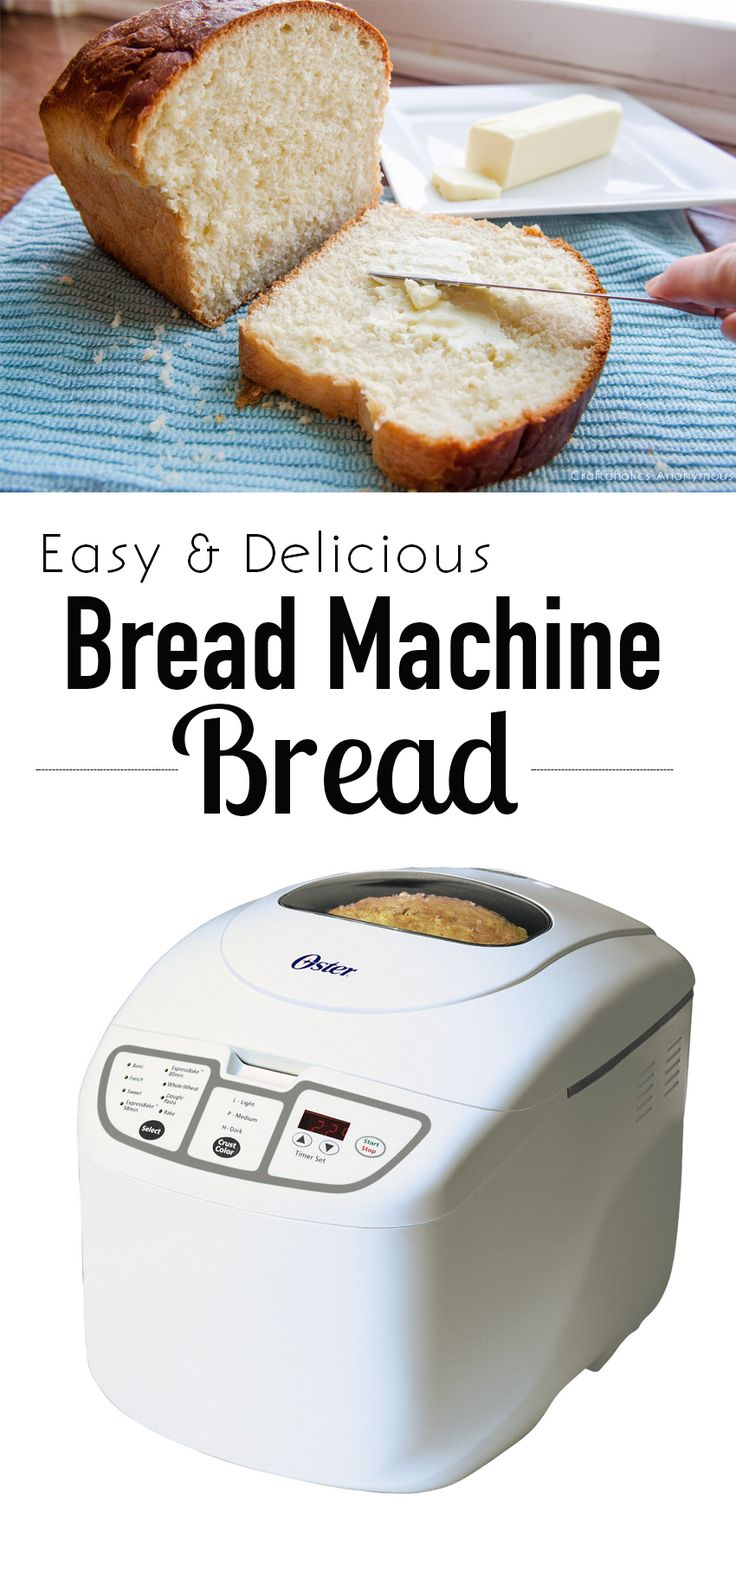 The most Delicious Bread Machine bread recipe ever! Get homemade bread the easy way! A nice, hearty bread full of flavor.